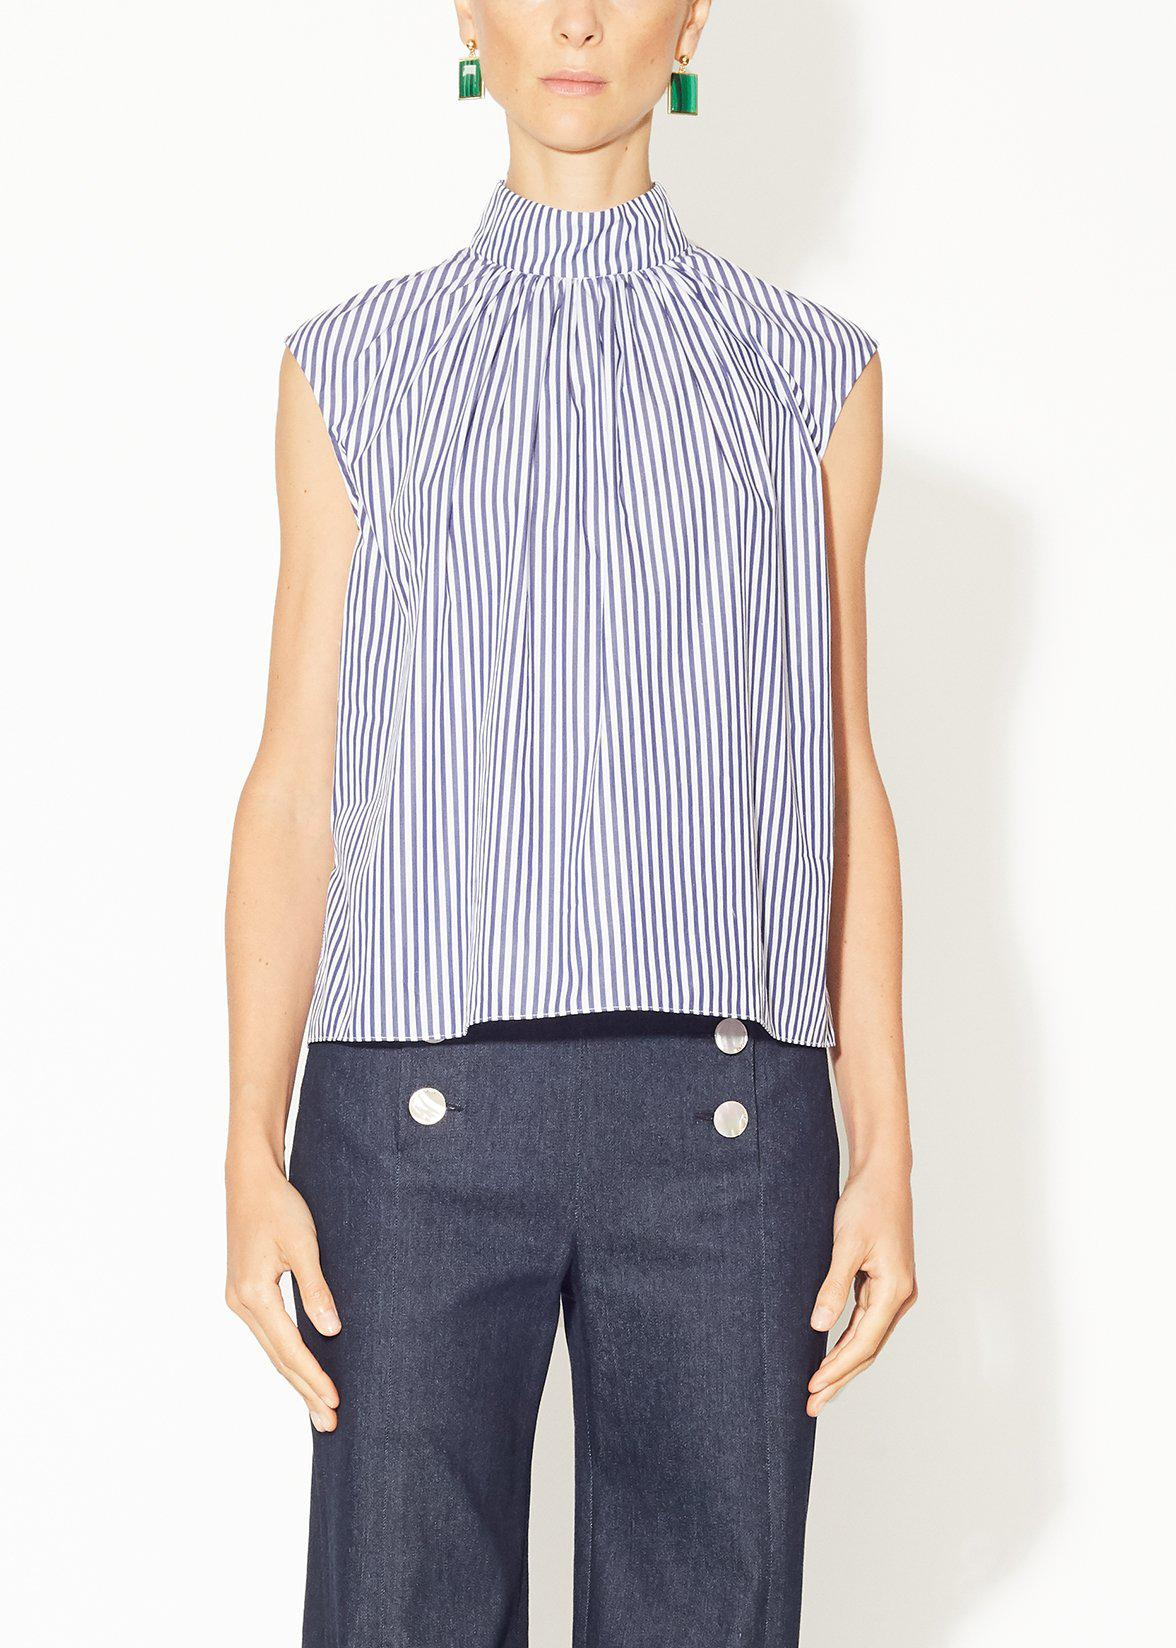 SHIRRED NECK TOP IN STRIPED SHIRTING